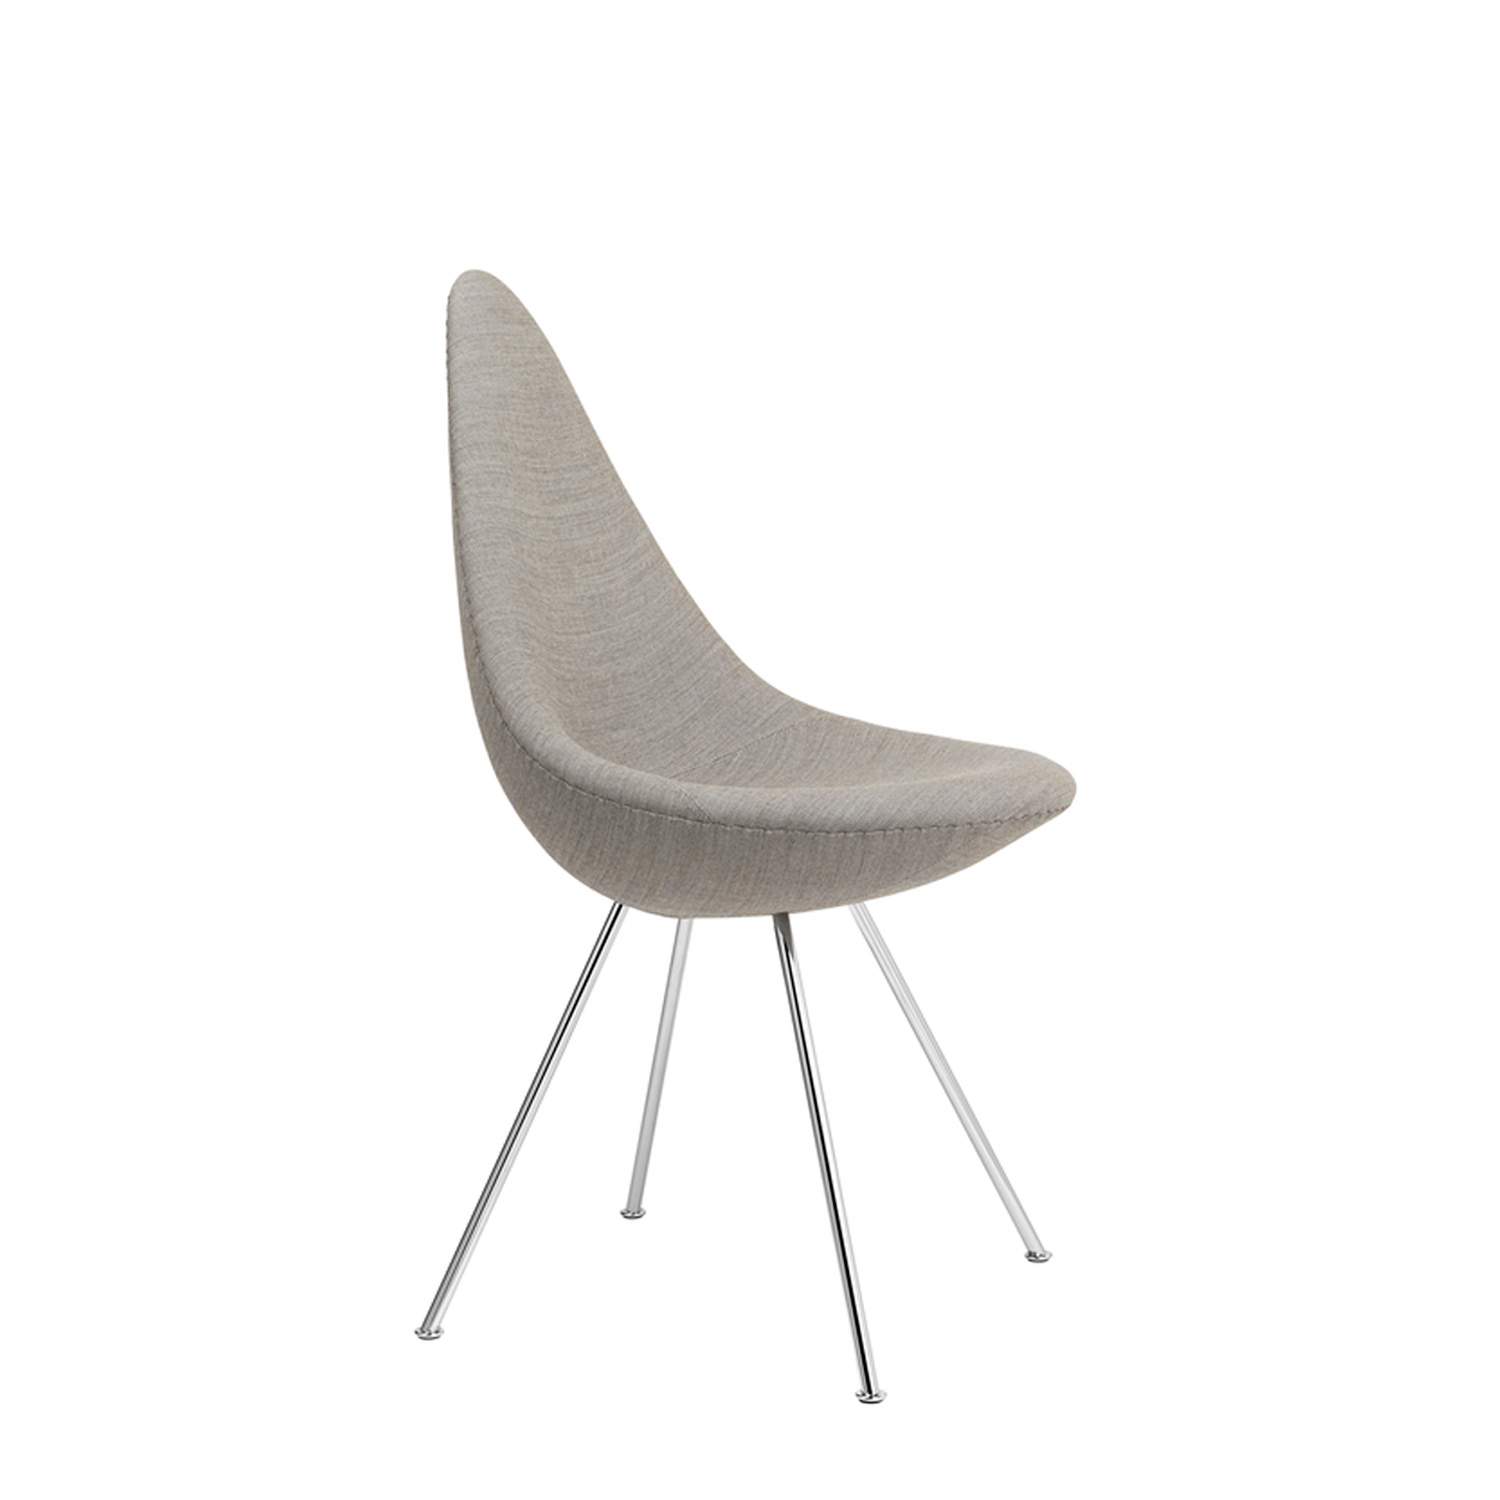 Drop Chair Upholstered - <p>The Drop is a small chair with a big personality and it is as fresh and vibrant as a new design but with a rare heritage. </p> <p>The curvy chair, designed by Arne Jacobsen, was Jacobsen's own favourite piece.<br /> The design of the back combines a warm embrace with freedom of movement, resulting in a surprising level of comfort. It blends elegantly into a wide variety of settings as a great example of furniture design that is able to influence and elevate an entire room by its mere presence and beauty. </p> <p>The Drop chair is fully upholstered with cold cured foam and covered in a wide range of fabrics and leather types with a 4 legs base in chrome or powder coated steel.</p> <p>A range of materials and colours are available in a number of combinations. Prices may vary.<br /> Please enquire for full details.</p>  | Matter of Stuff